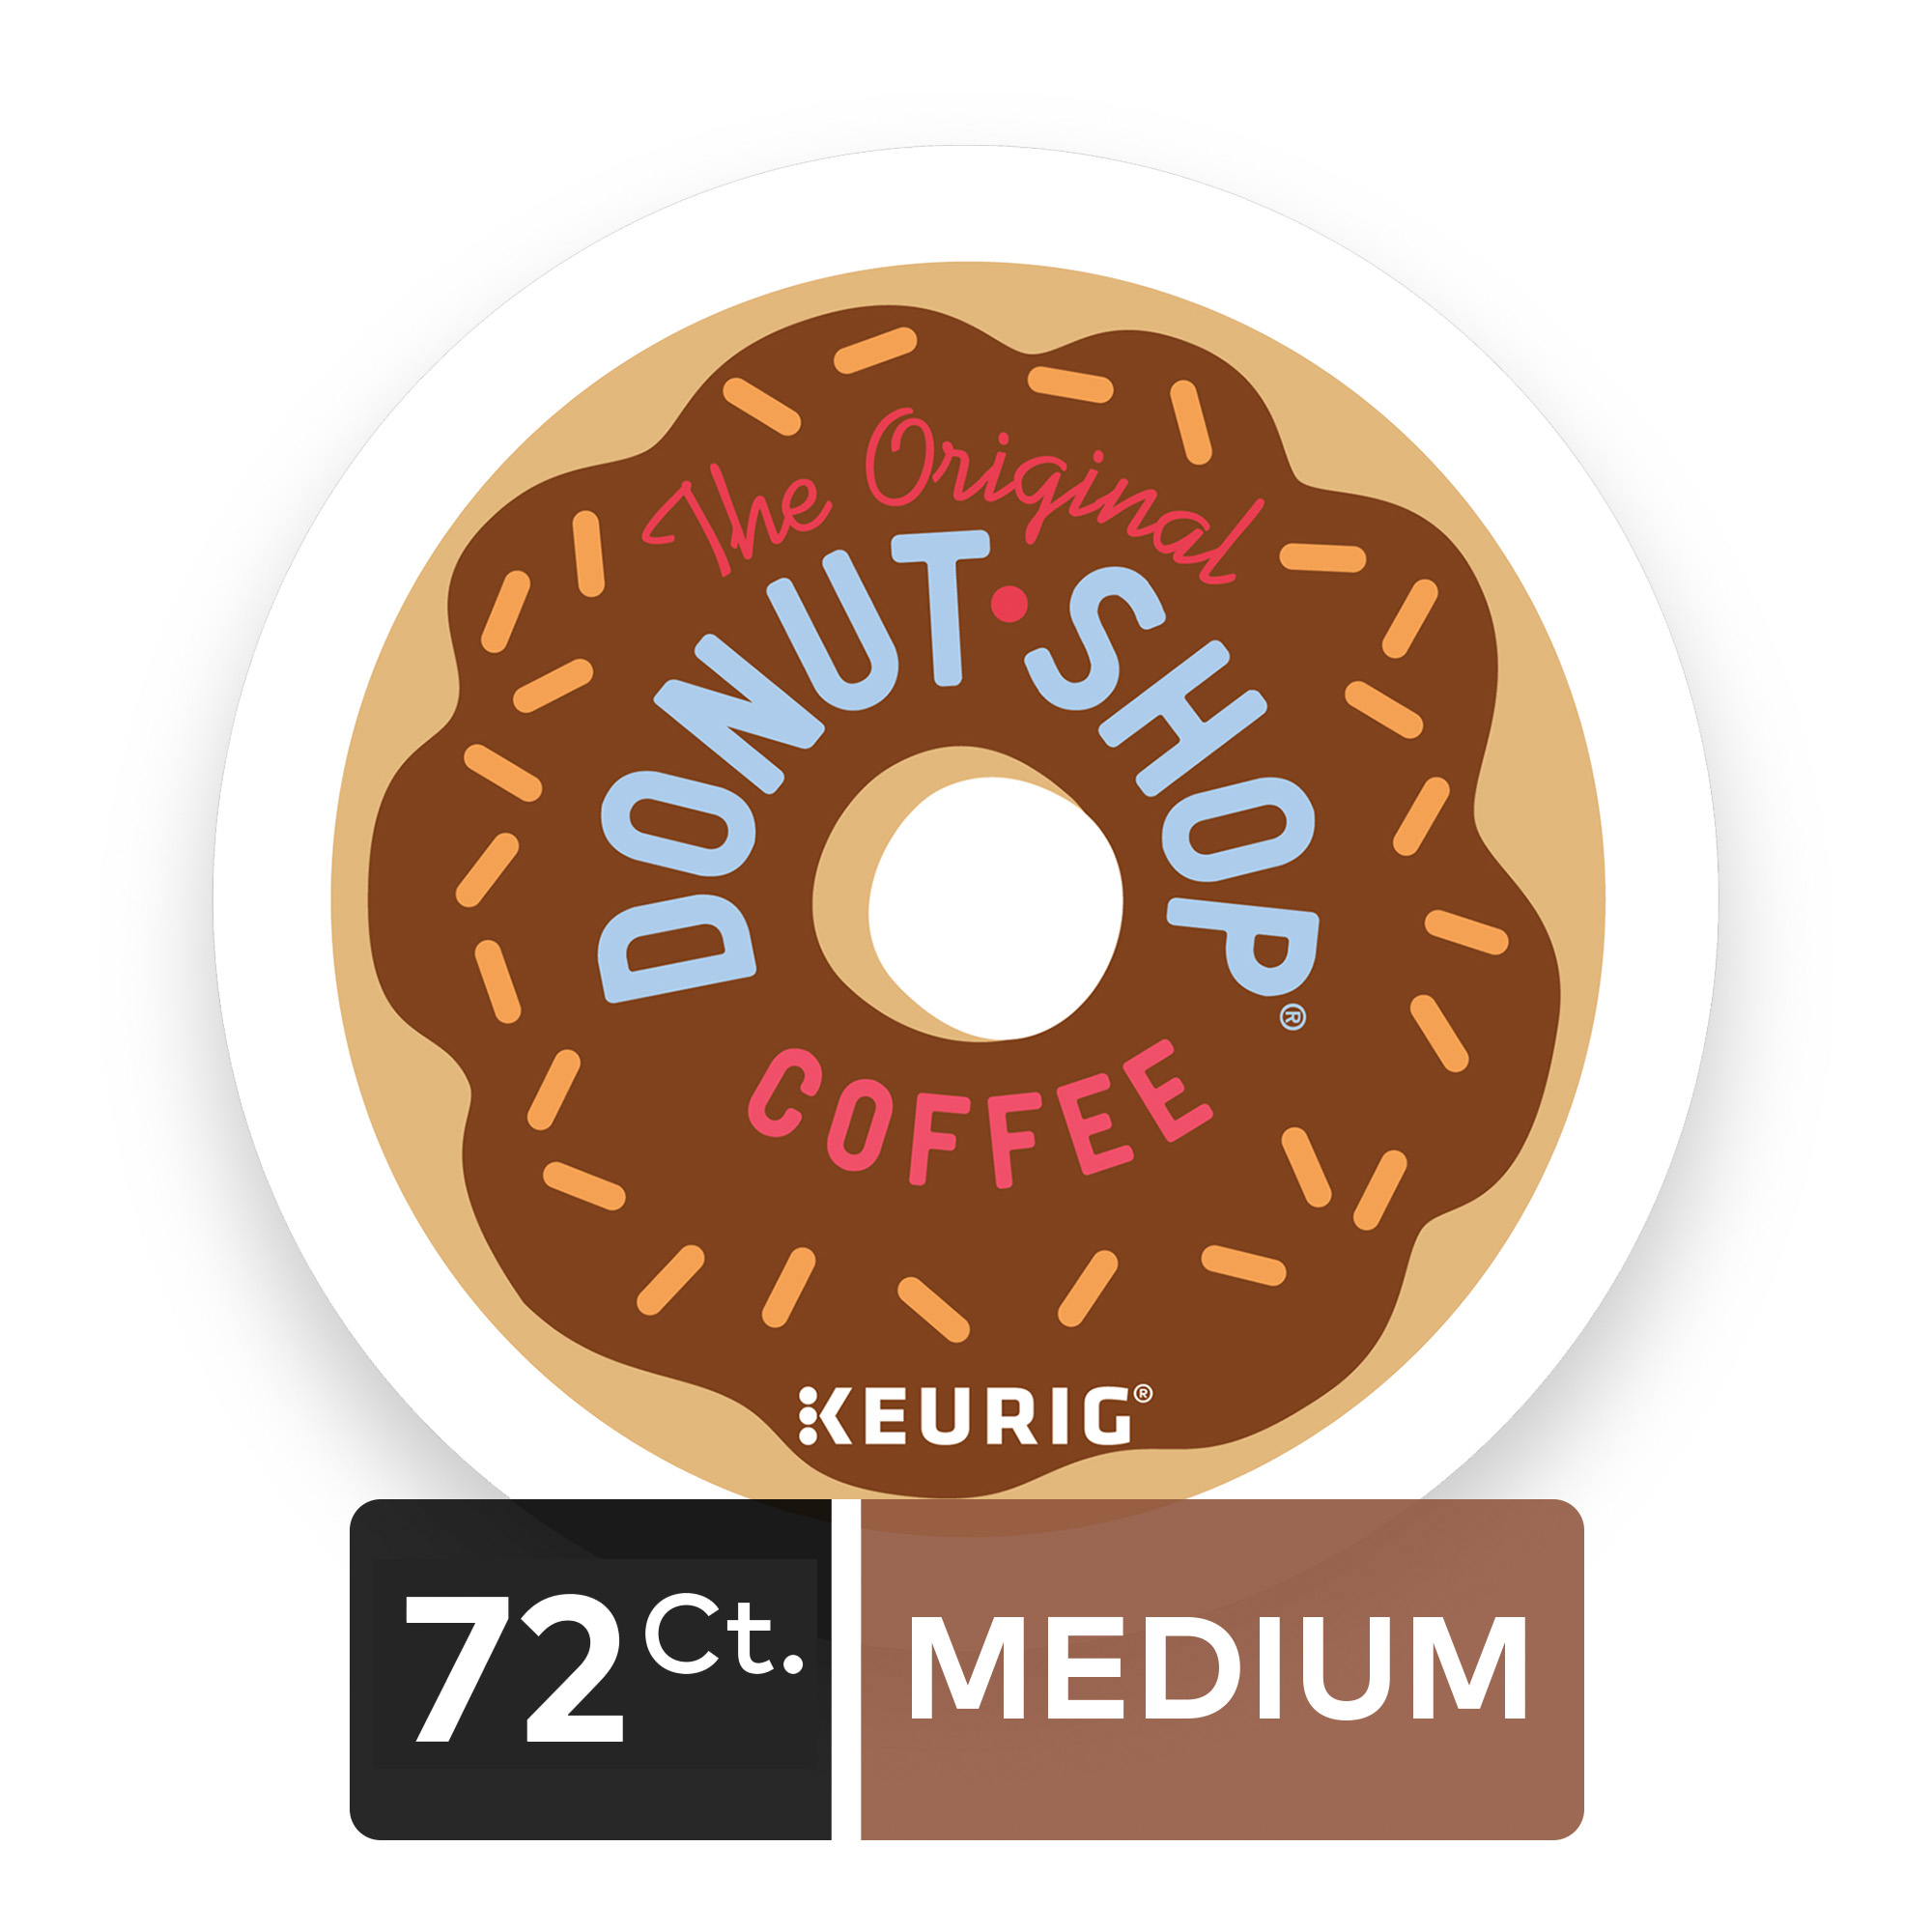 (4 Pack) The Original Donut Shop Regular, Coffee Keurig K-Cup Pods, Medium Roast, 18 Count